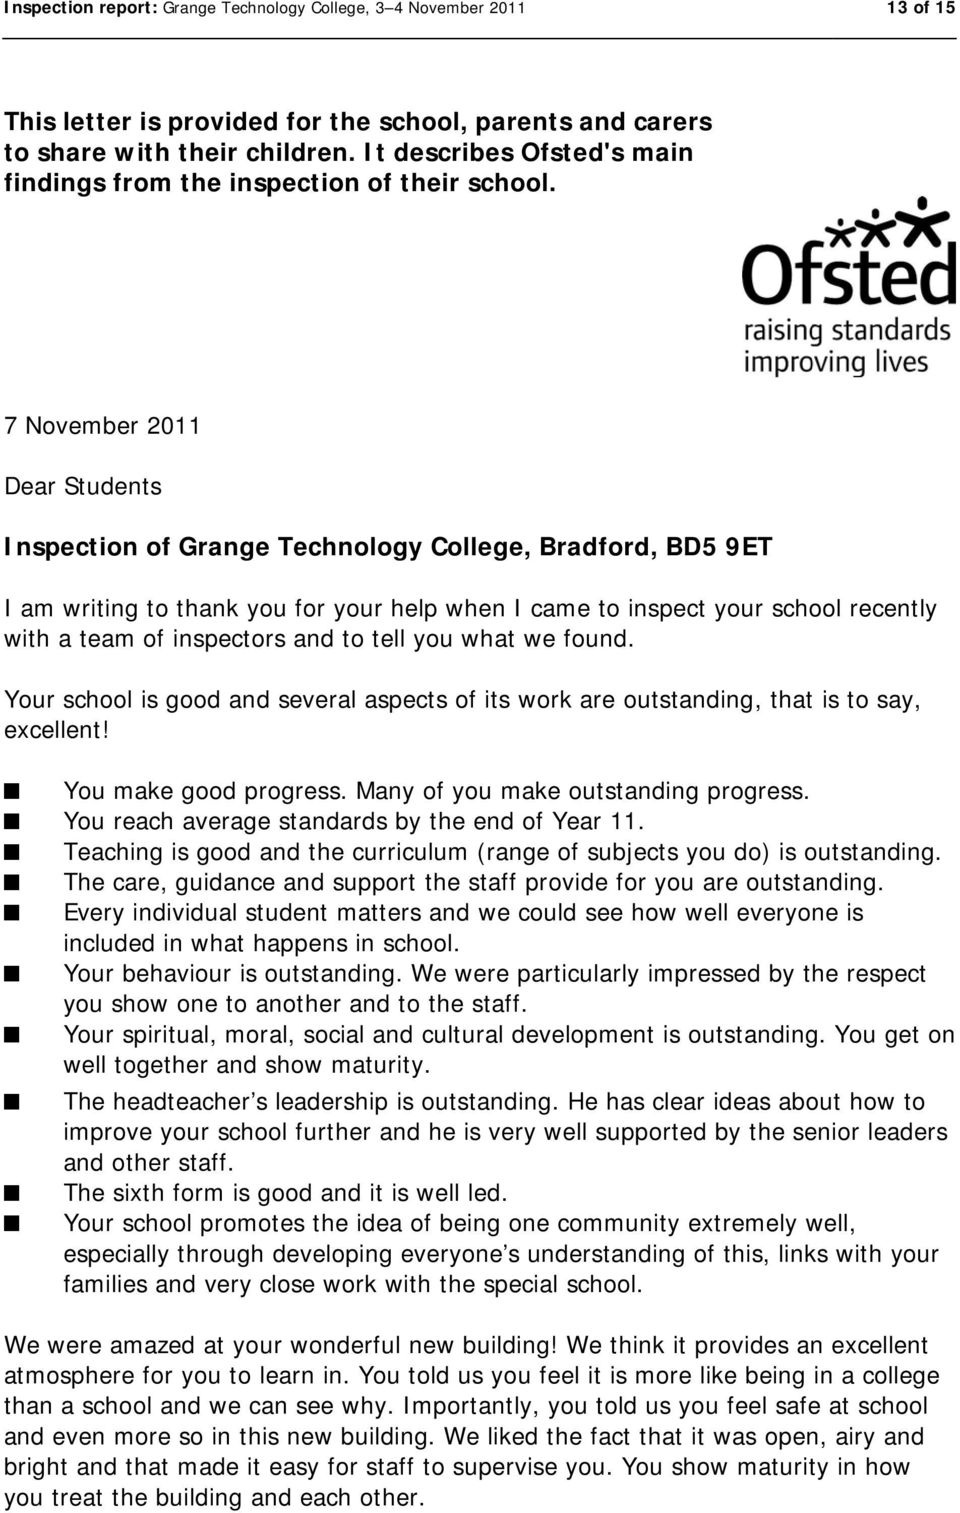 7 November 2011 Dear Students Inspection of Grange Technology College, Bradford, BD5 9ET I am writing to thank you for your help when I came to inspect your school recently with a team of inspectors